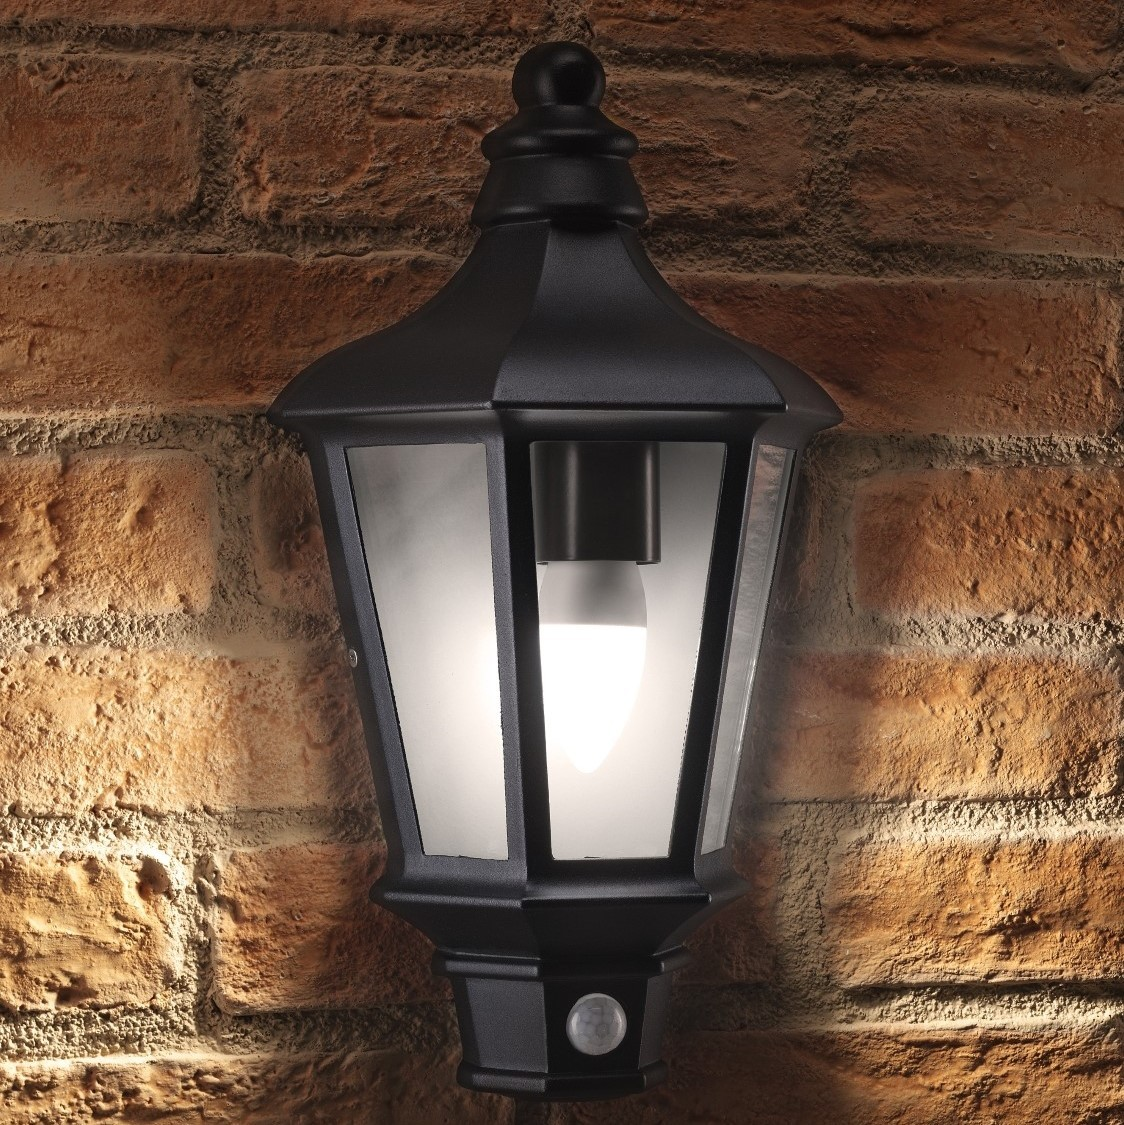 Auraglow PIR Motion Sensor Vintage Outdoor Security Wall Light - CHESTER -  Auraglow LED Lighting e8dc777dc217